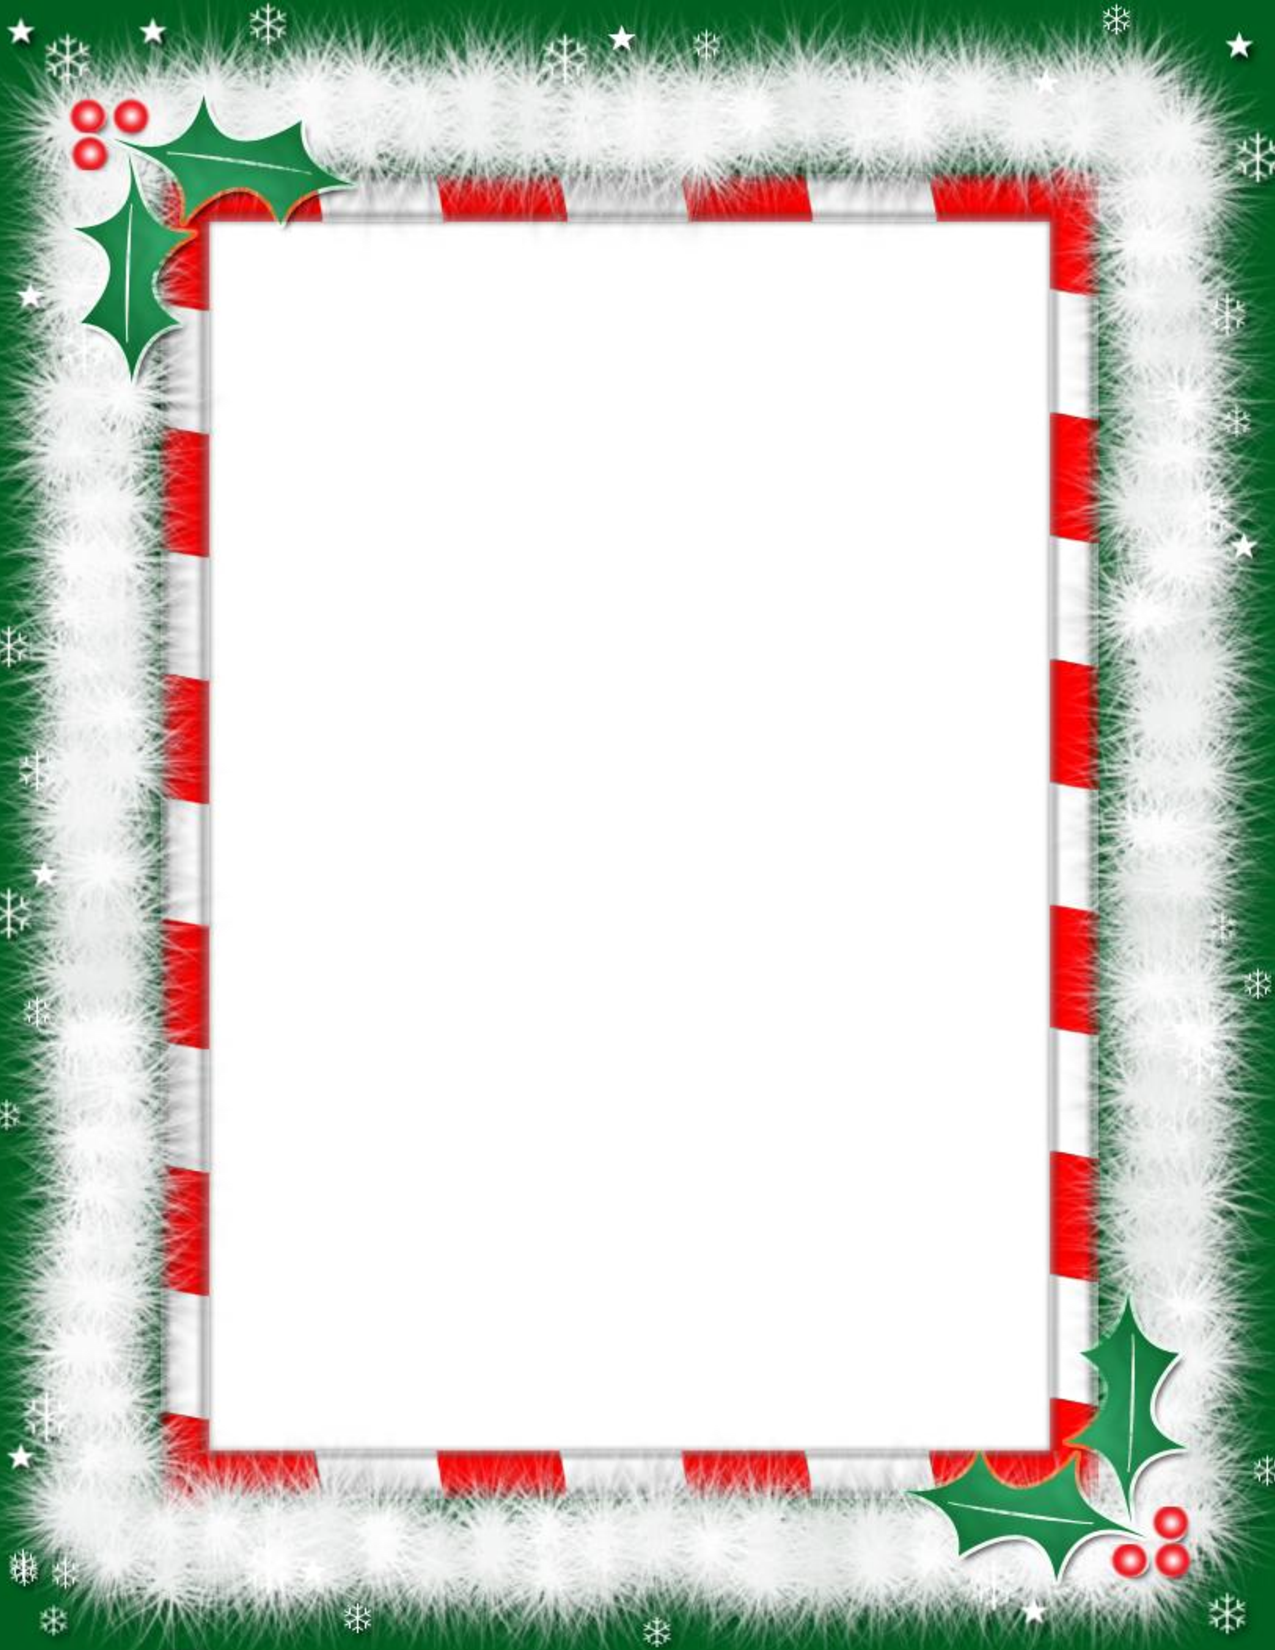 Christmas Borders For Letters Christmas Border Template Free Christmas Borders Christmas Letter Template Free Christmas Letter Template